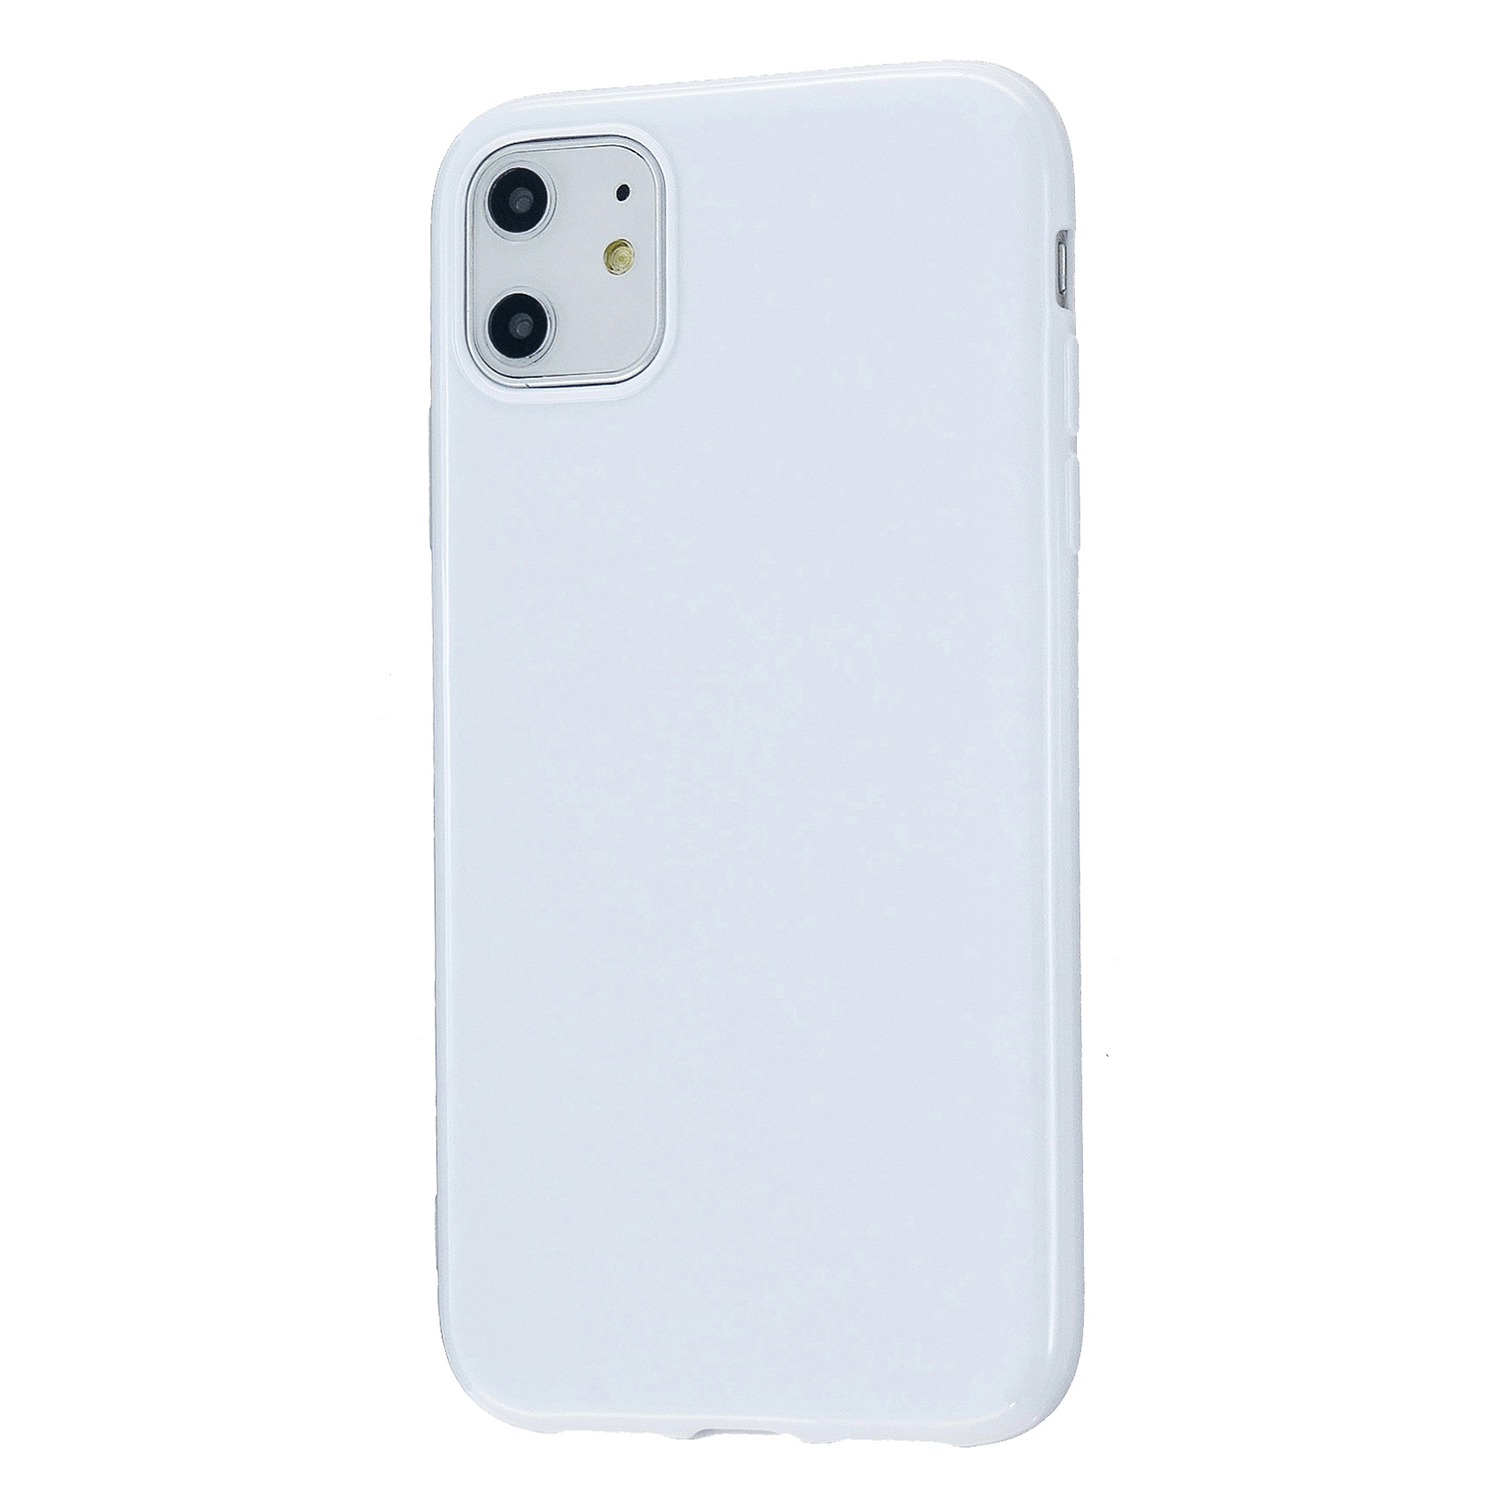 For iPhone 11/11 Pro/11 Pro Max Smartphone Cover Slim Fit Glossy TPU Phone Case Full Body Protection Shell Milk white